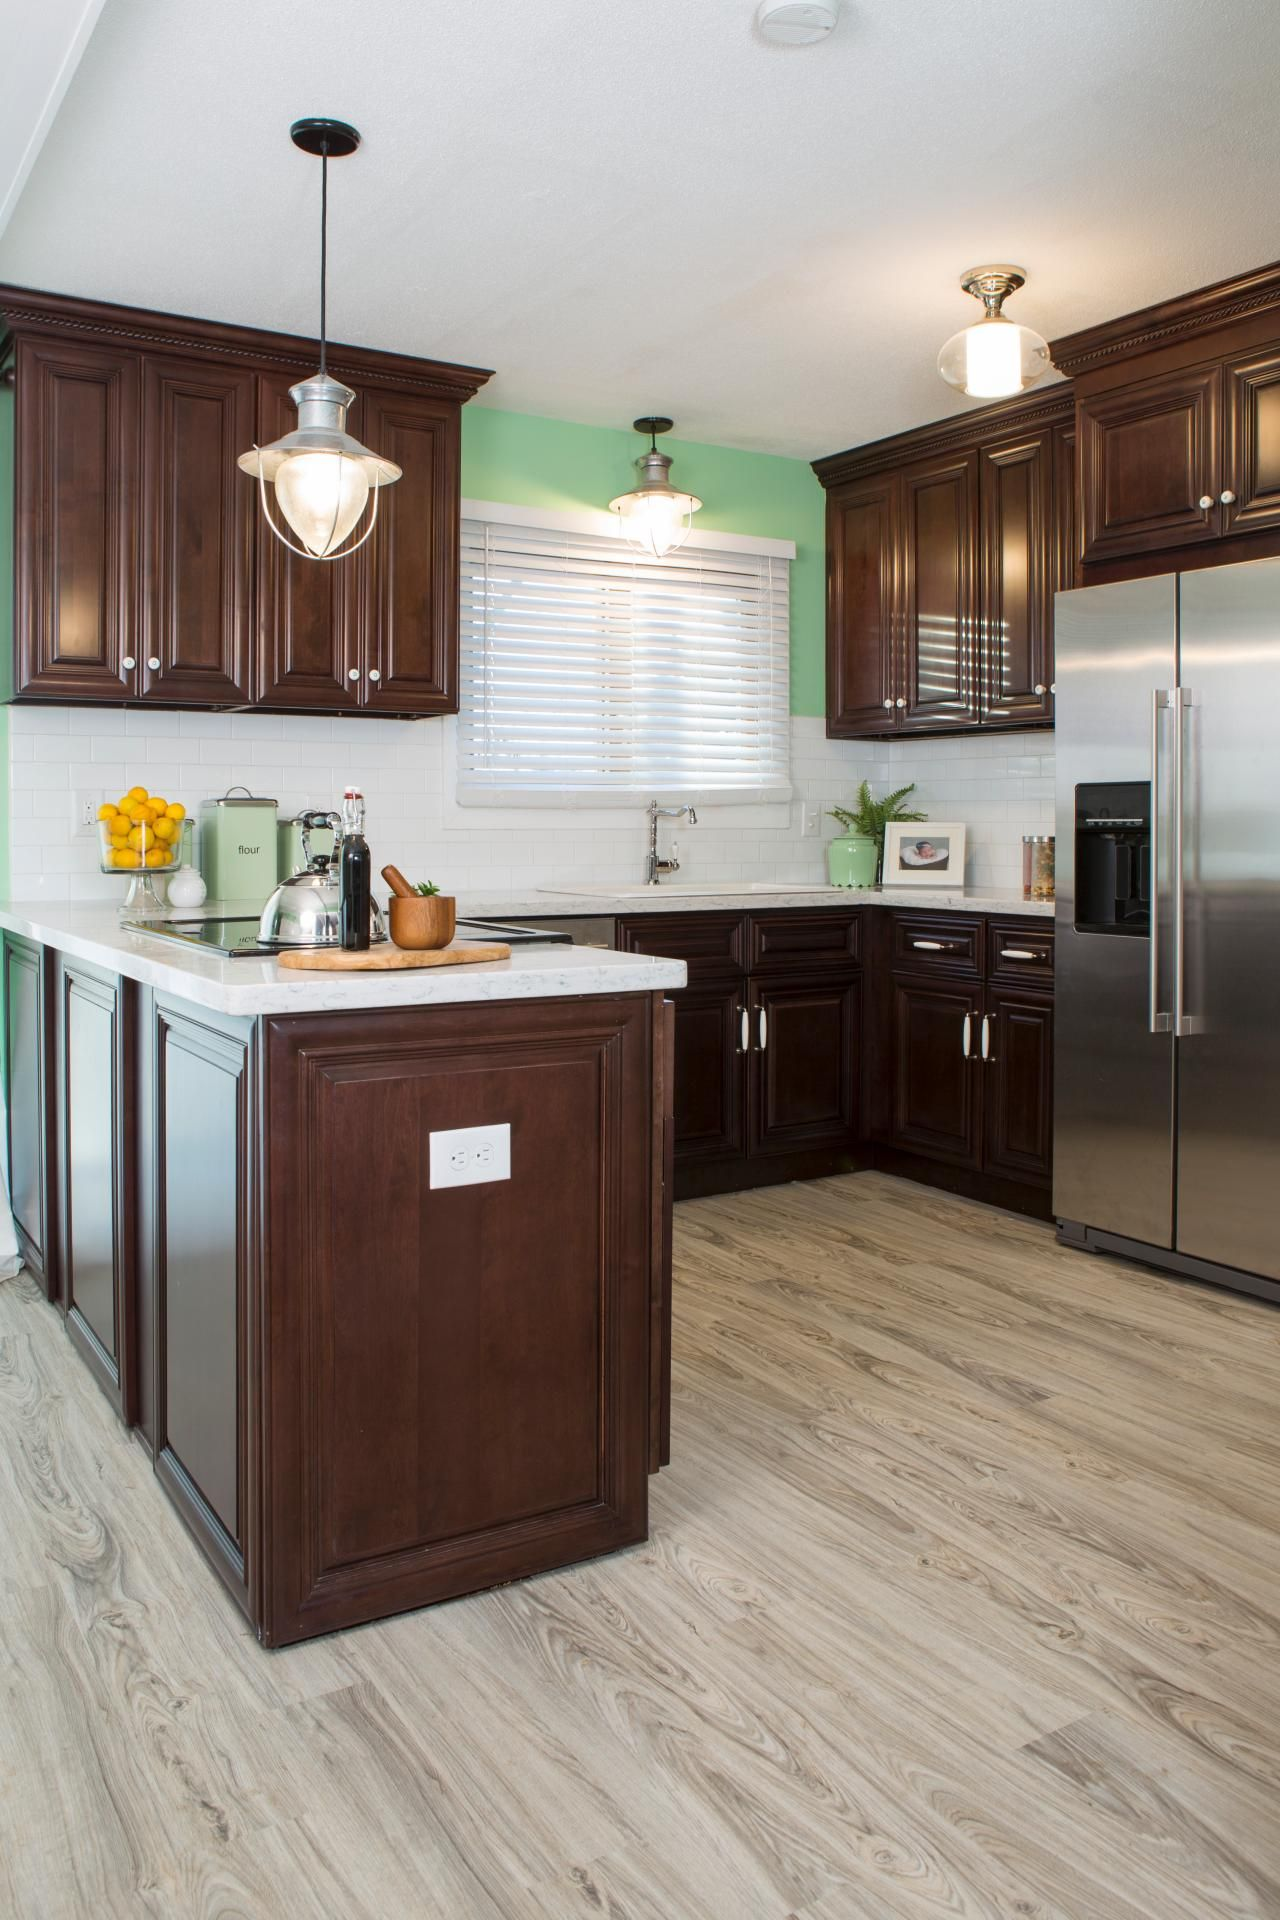 Best Small Kitchen Design With Cherry Wood Cabinets Green 640 x 480